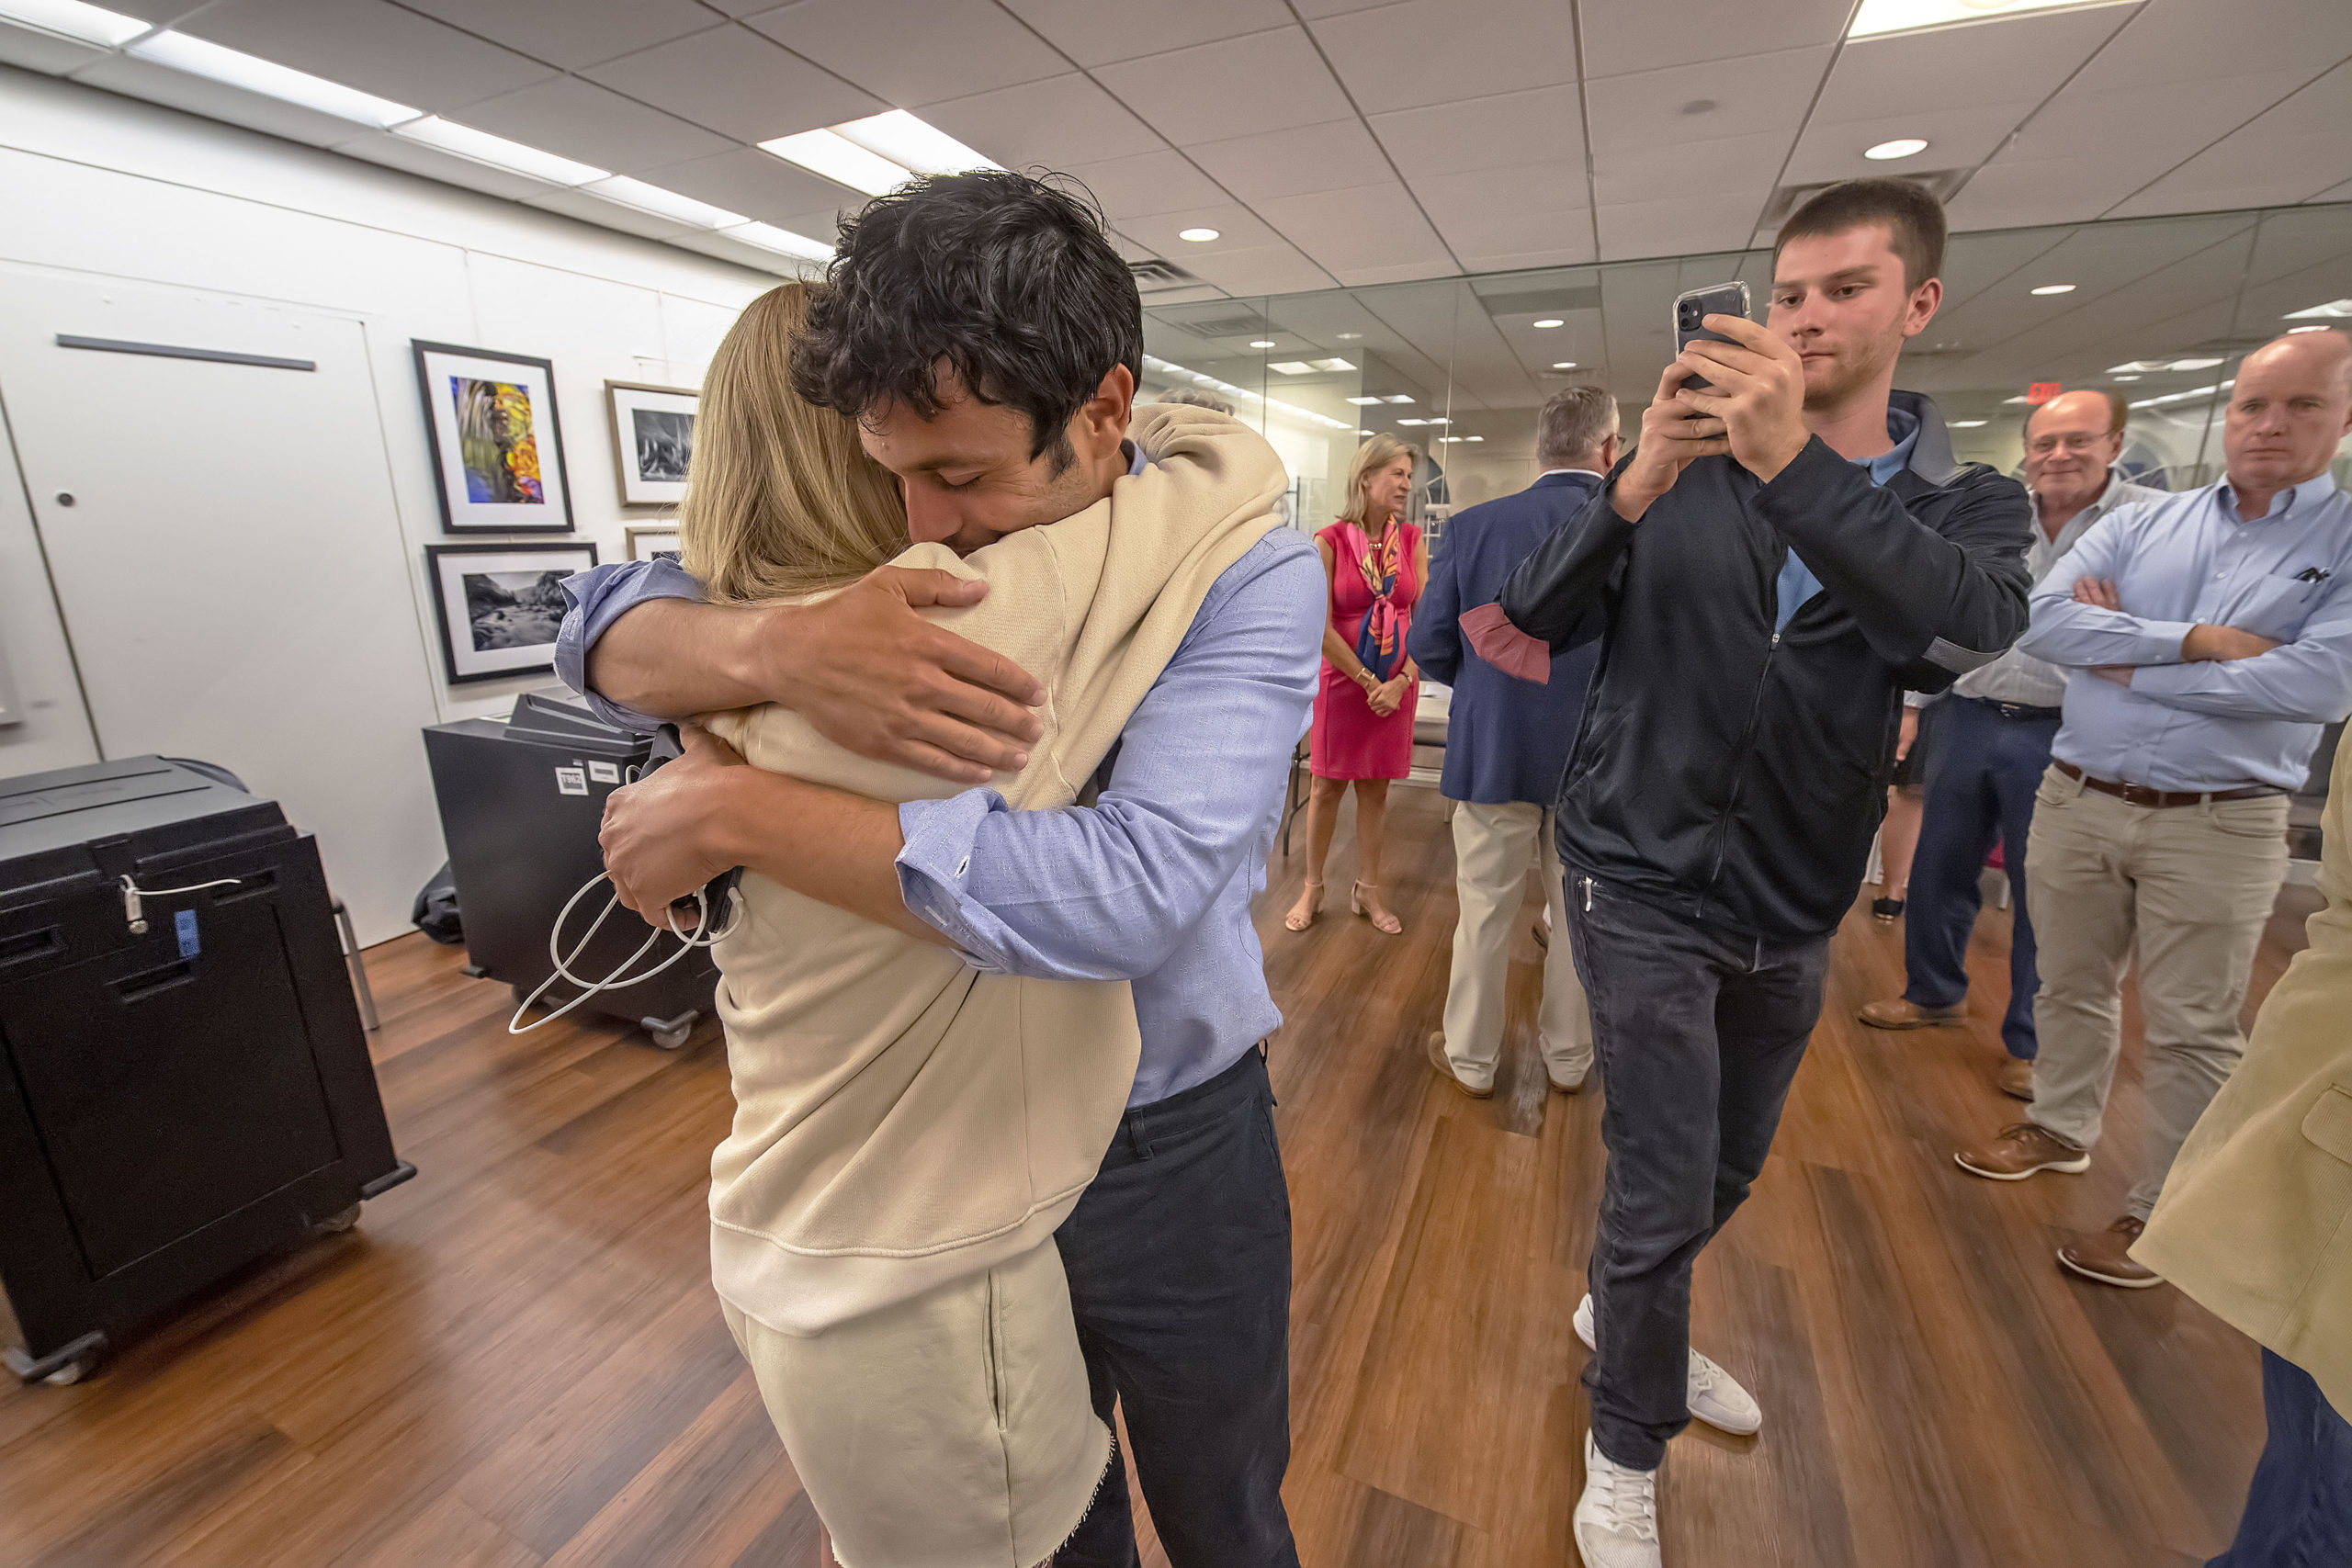 As his communications director takes some video, newly-re-elected Southampton Village Mayor Jesse Warren gets a long hug from his girlfriend Martyna Sokol following the 2021 Southampton Village Mayoral election at the Southampton Cultural Center on Friday night. MICHAEL HELLER